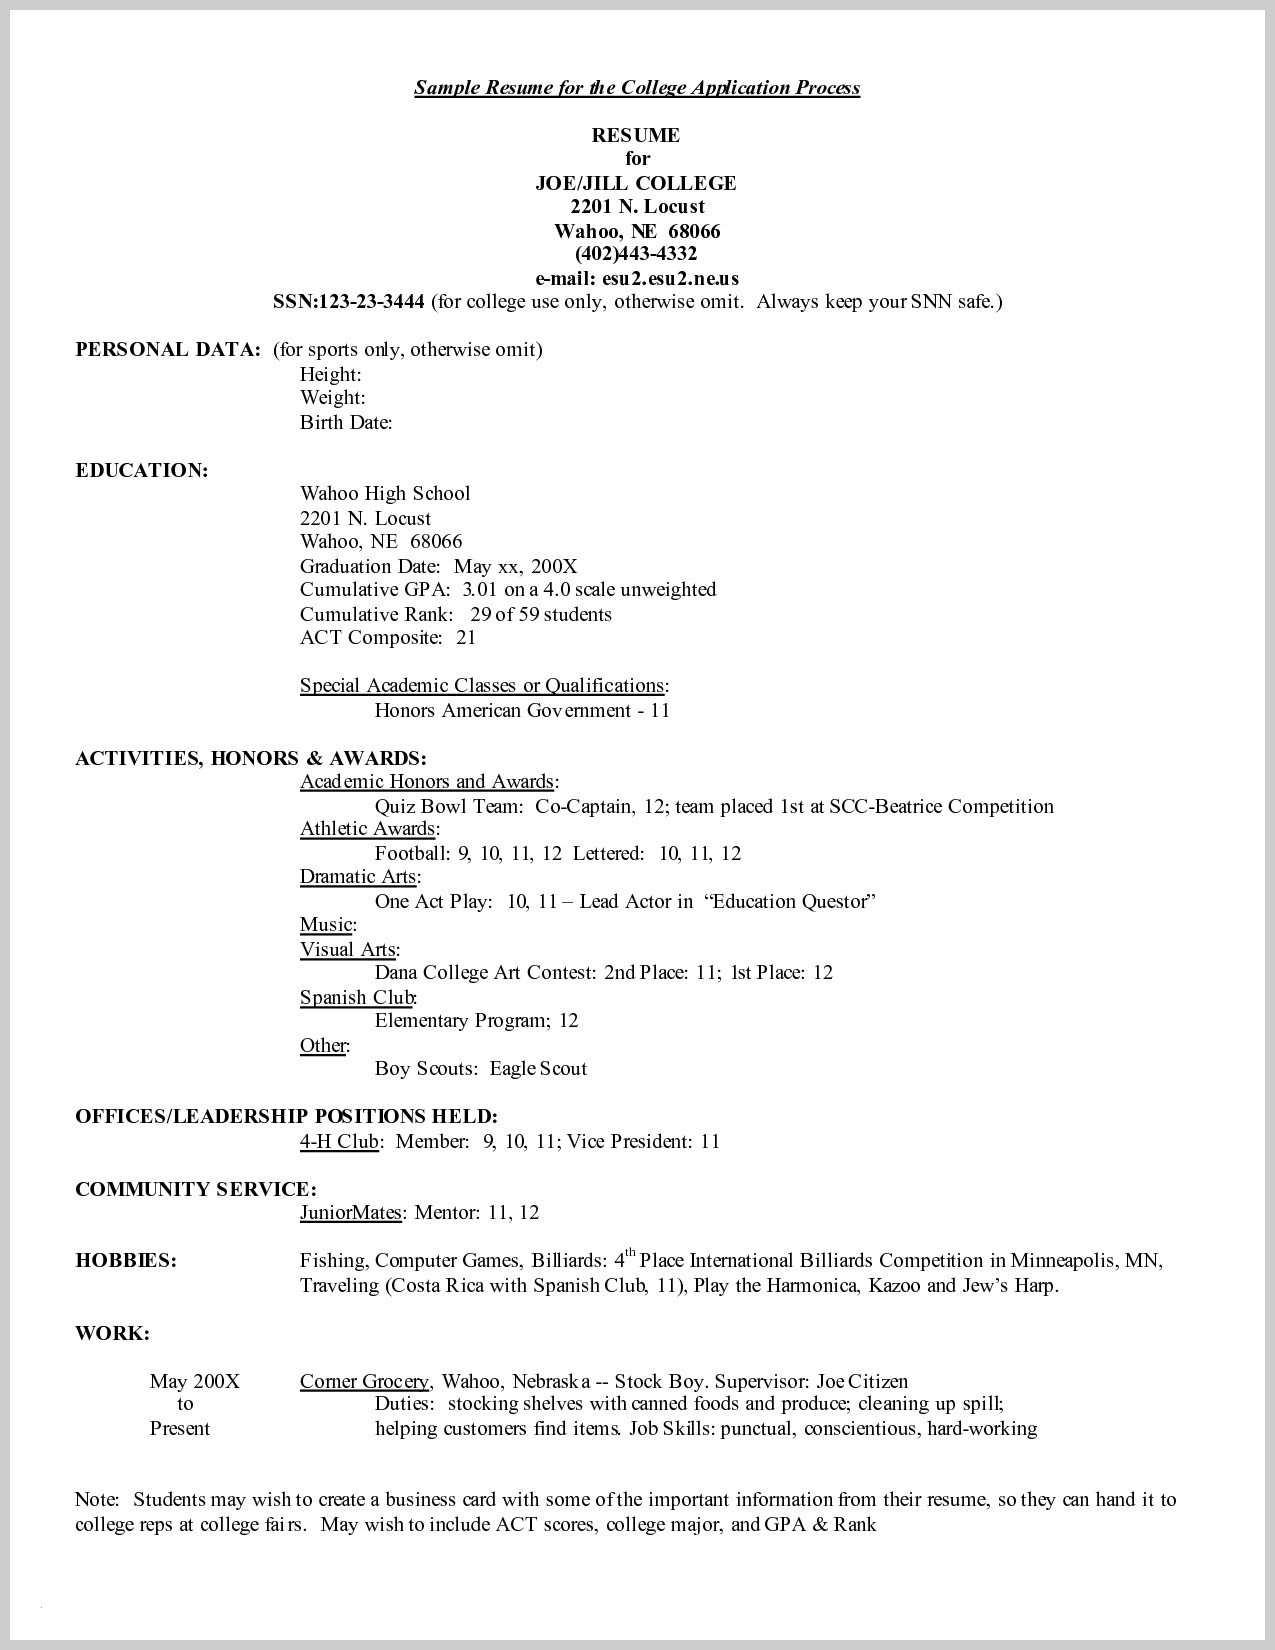 College athlete Resume Template - College Application Resume Template Microsoft Word Fresh format